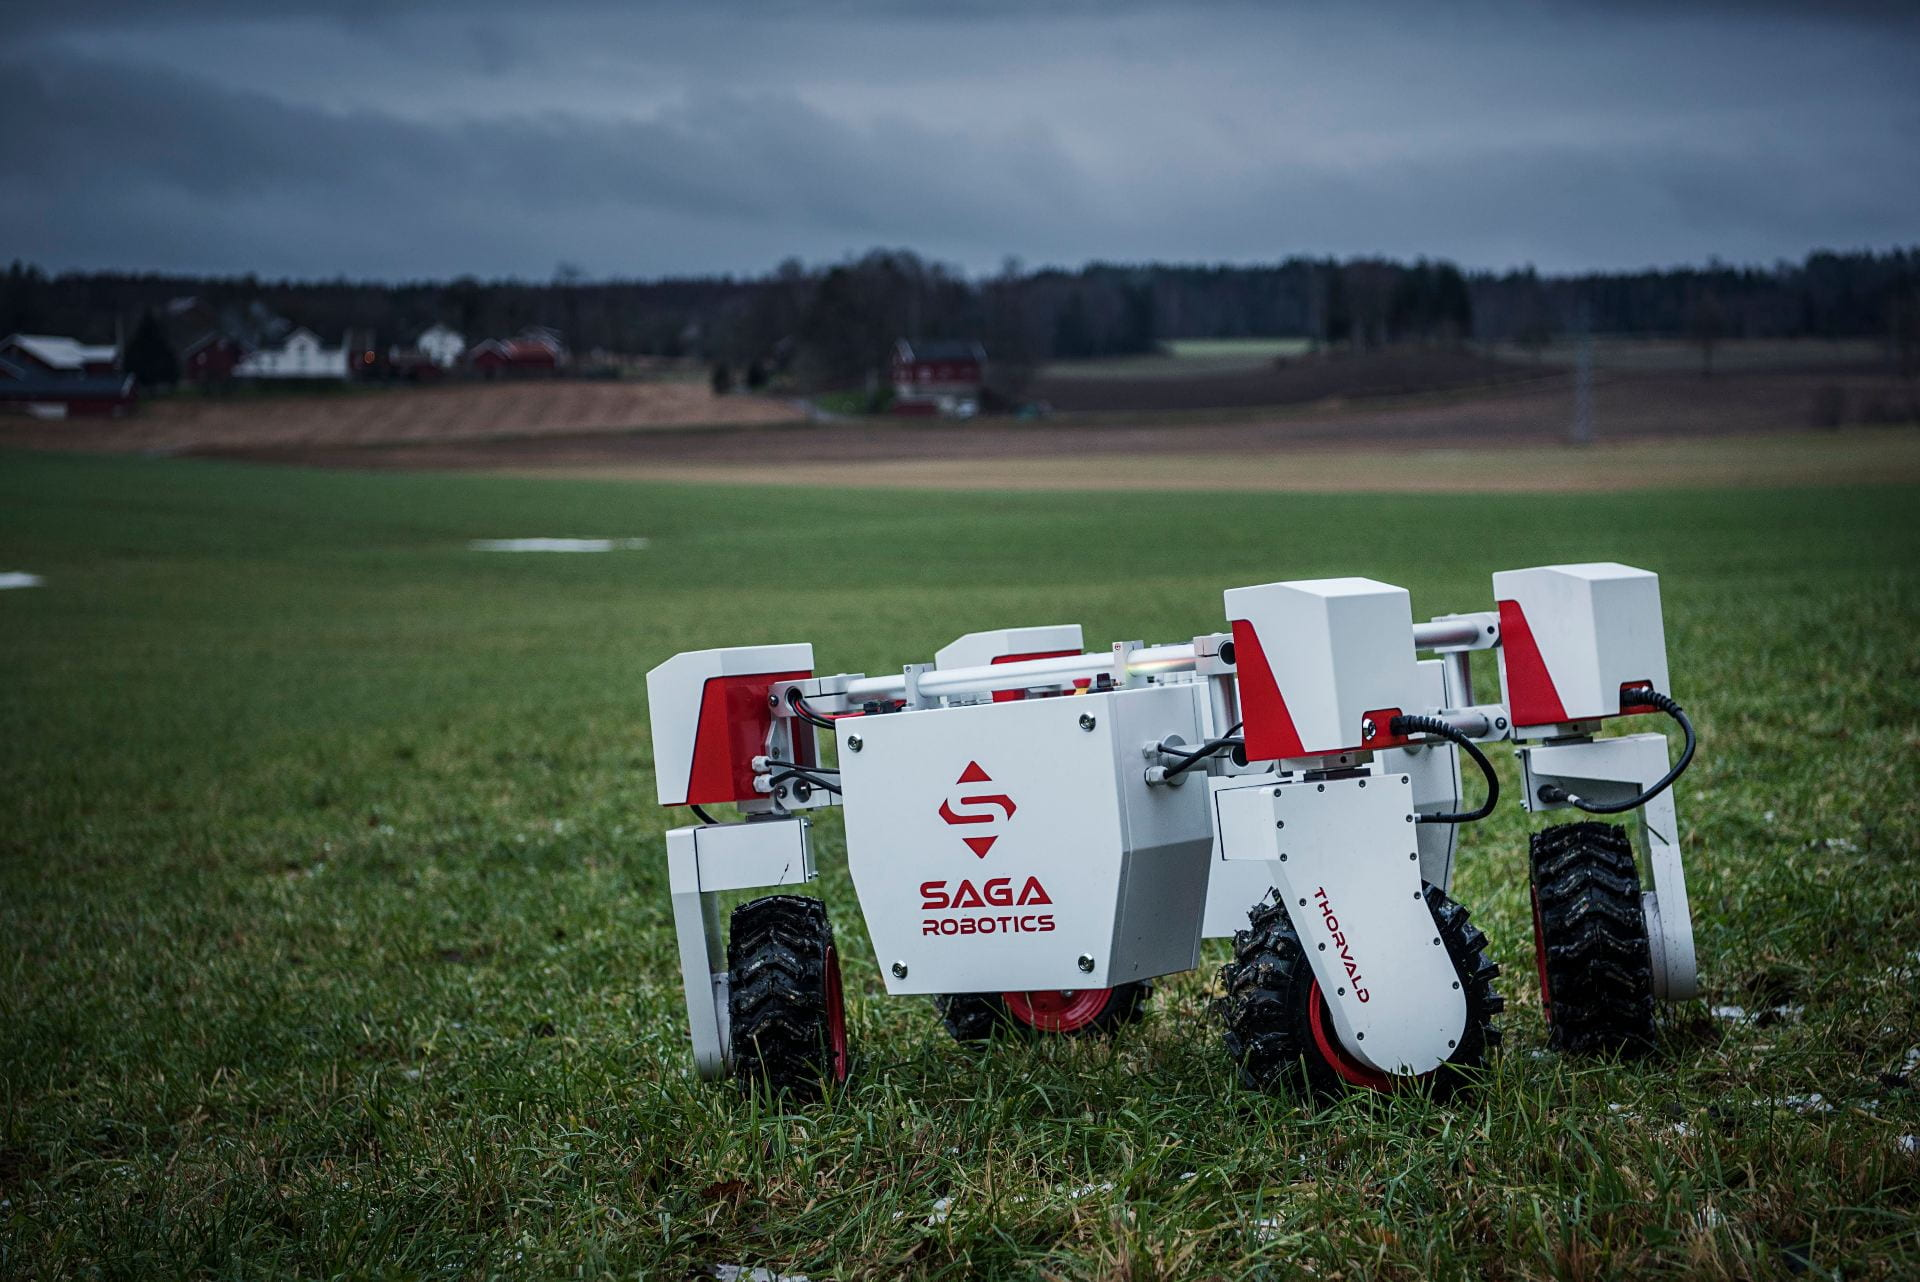 Saga robotics robot in a field.